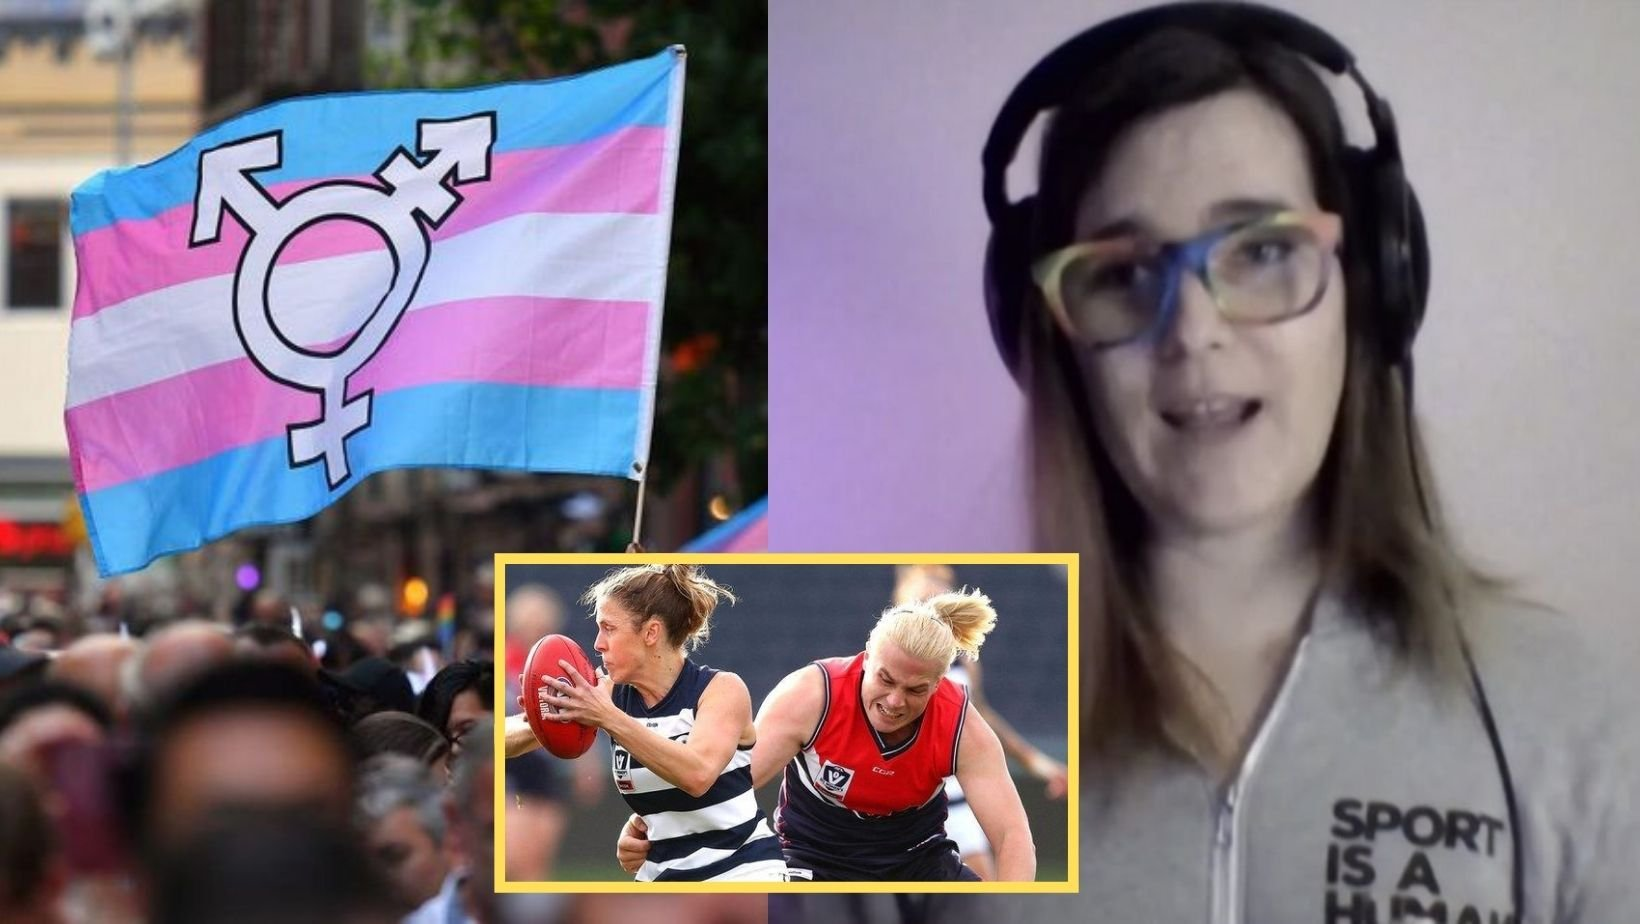 1 22.jpg?resize=1200,630 - Doctor Claims There's No Evidence That Transgender Girls Perform Better In Sports Than Cisgender Girls